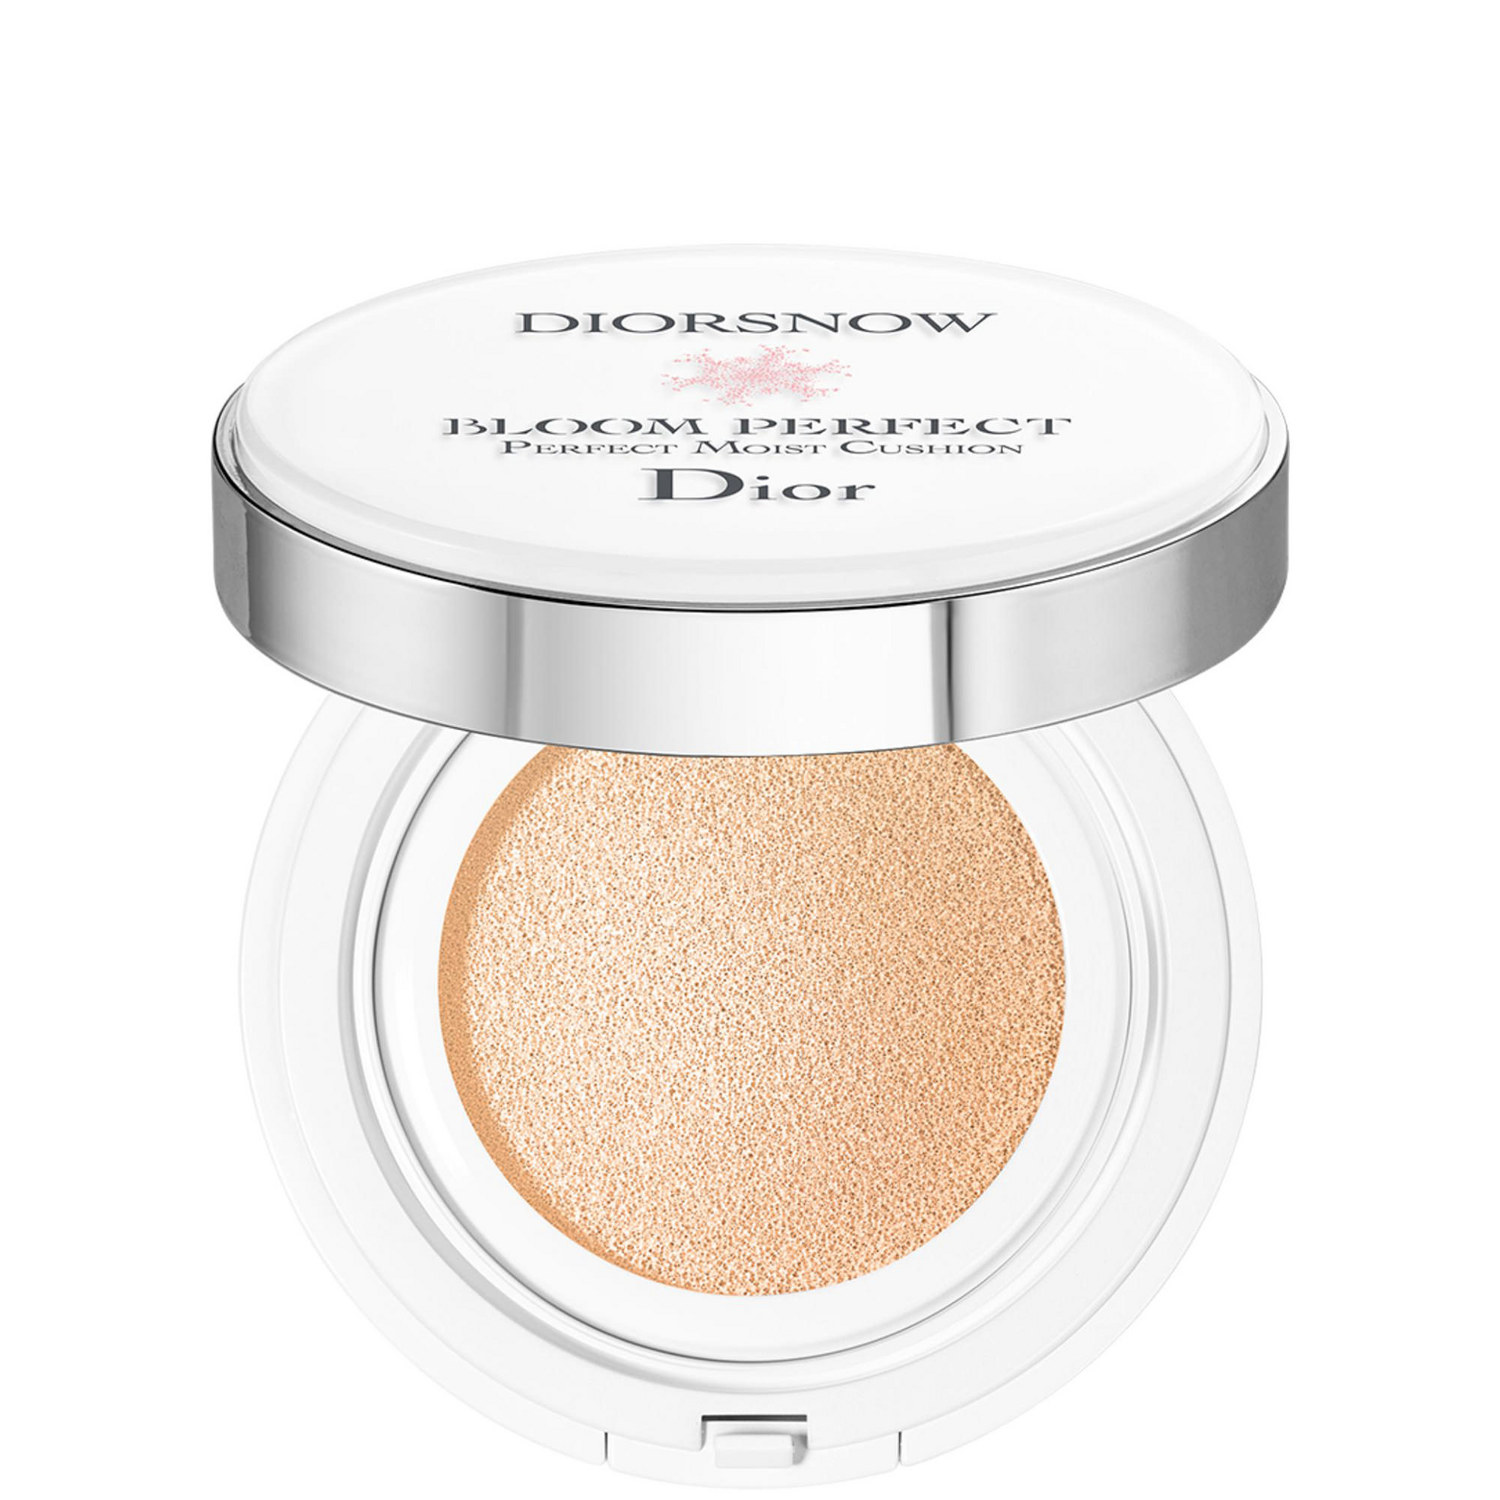 Diorsnow_Bloom_Perfect_Brightening_Perfect_Moist_Cushion_SPF50_PA_